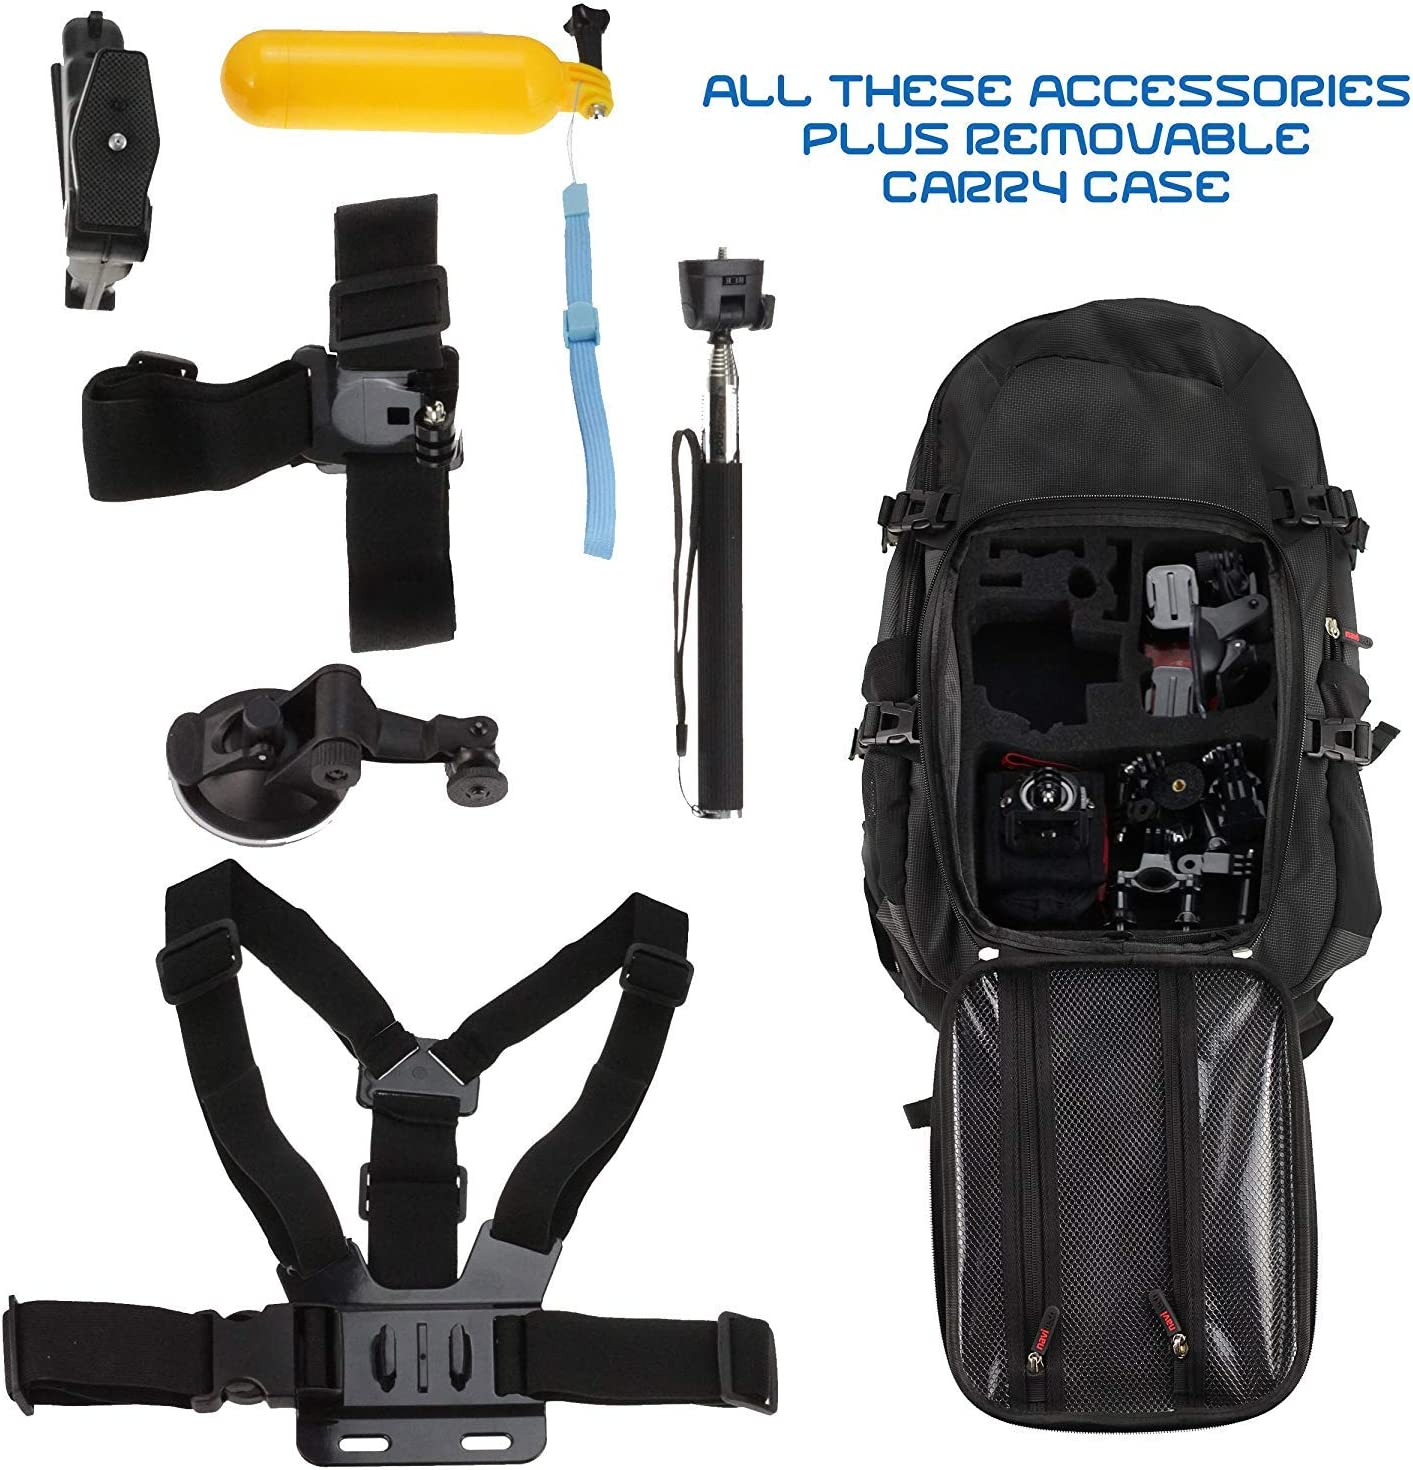 QUMOX F21 Silver Action Cam Replay XD720 Action Cam Navitech Action Camera Backpack /& 18-in-1 Accessory Combo Kit with Integrated Chest Strap Compatible with The Pictek Waterproof Action Cam